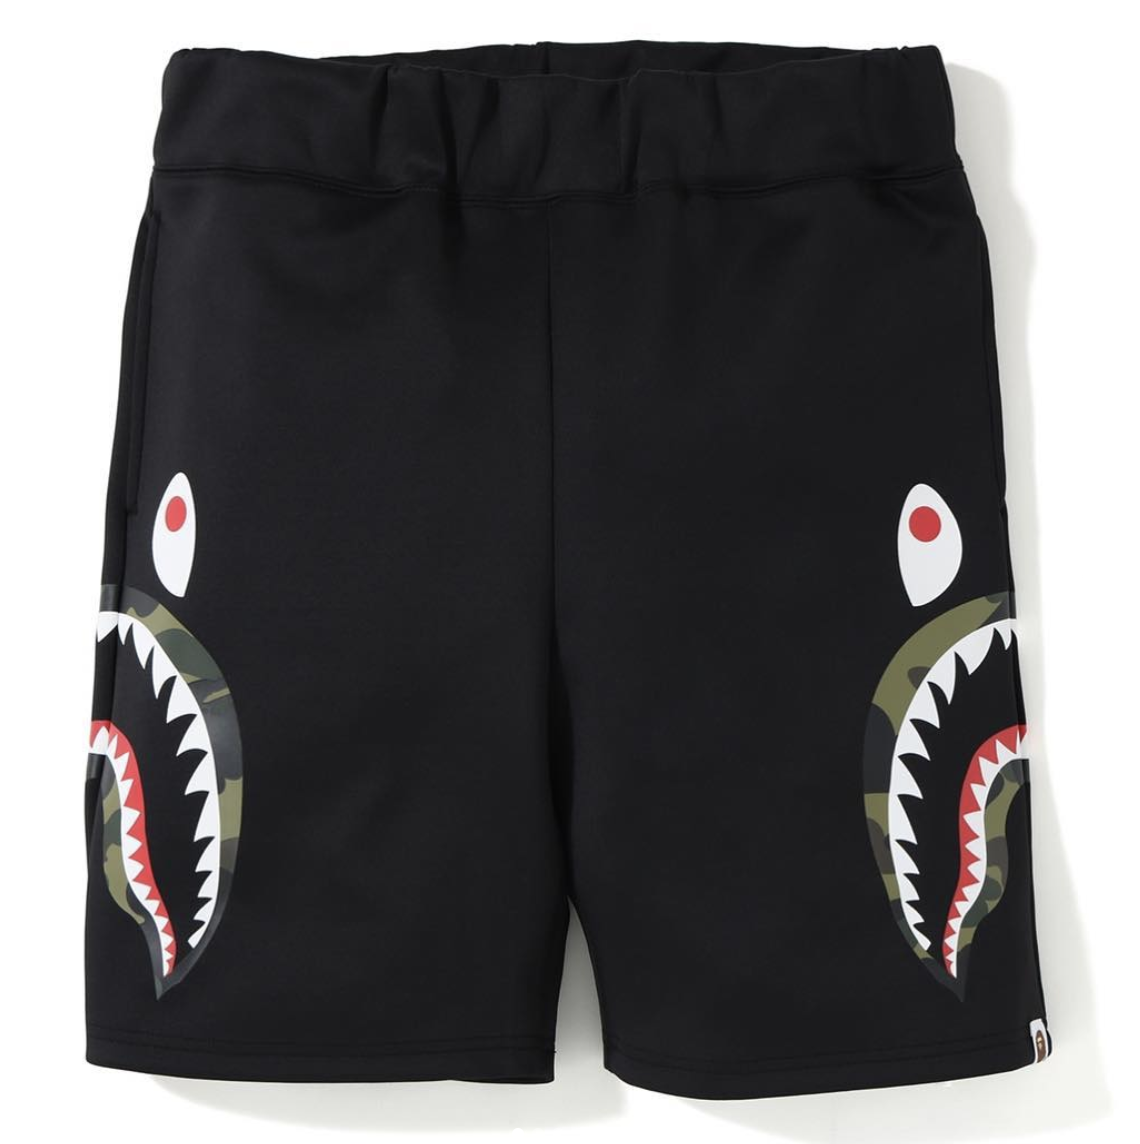 c5dd8298ab Bape Double Knit Side Shark Shorts Black | Novelship: Buy and Sell  Sneakers, Streetwear, 100% Authentic